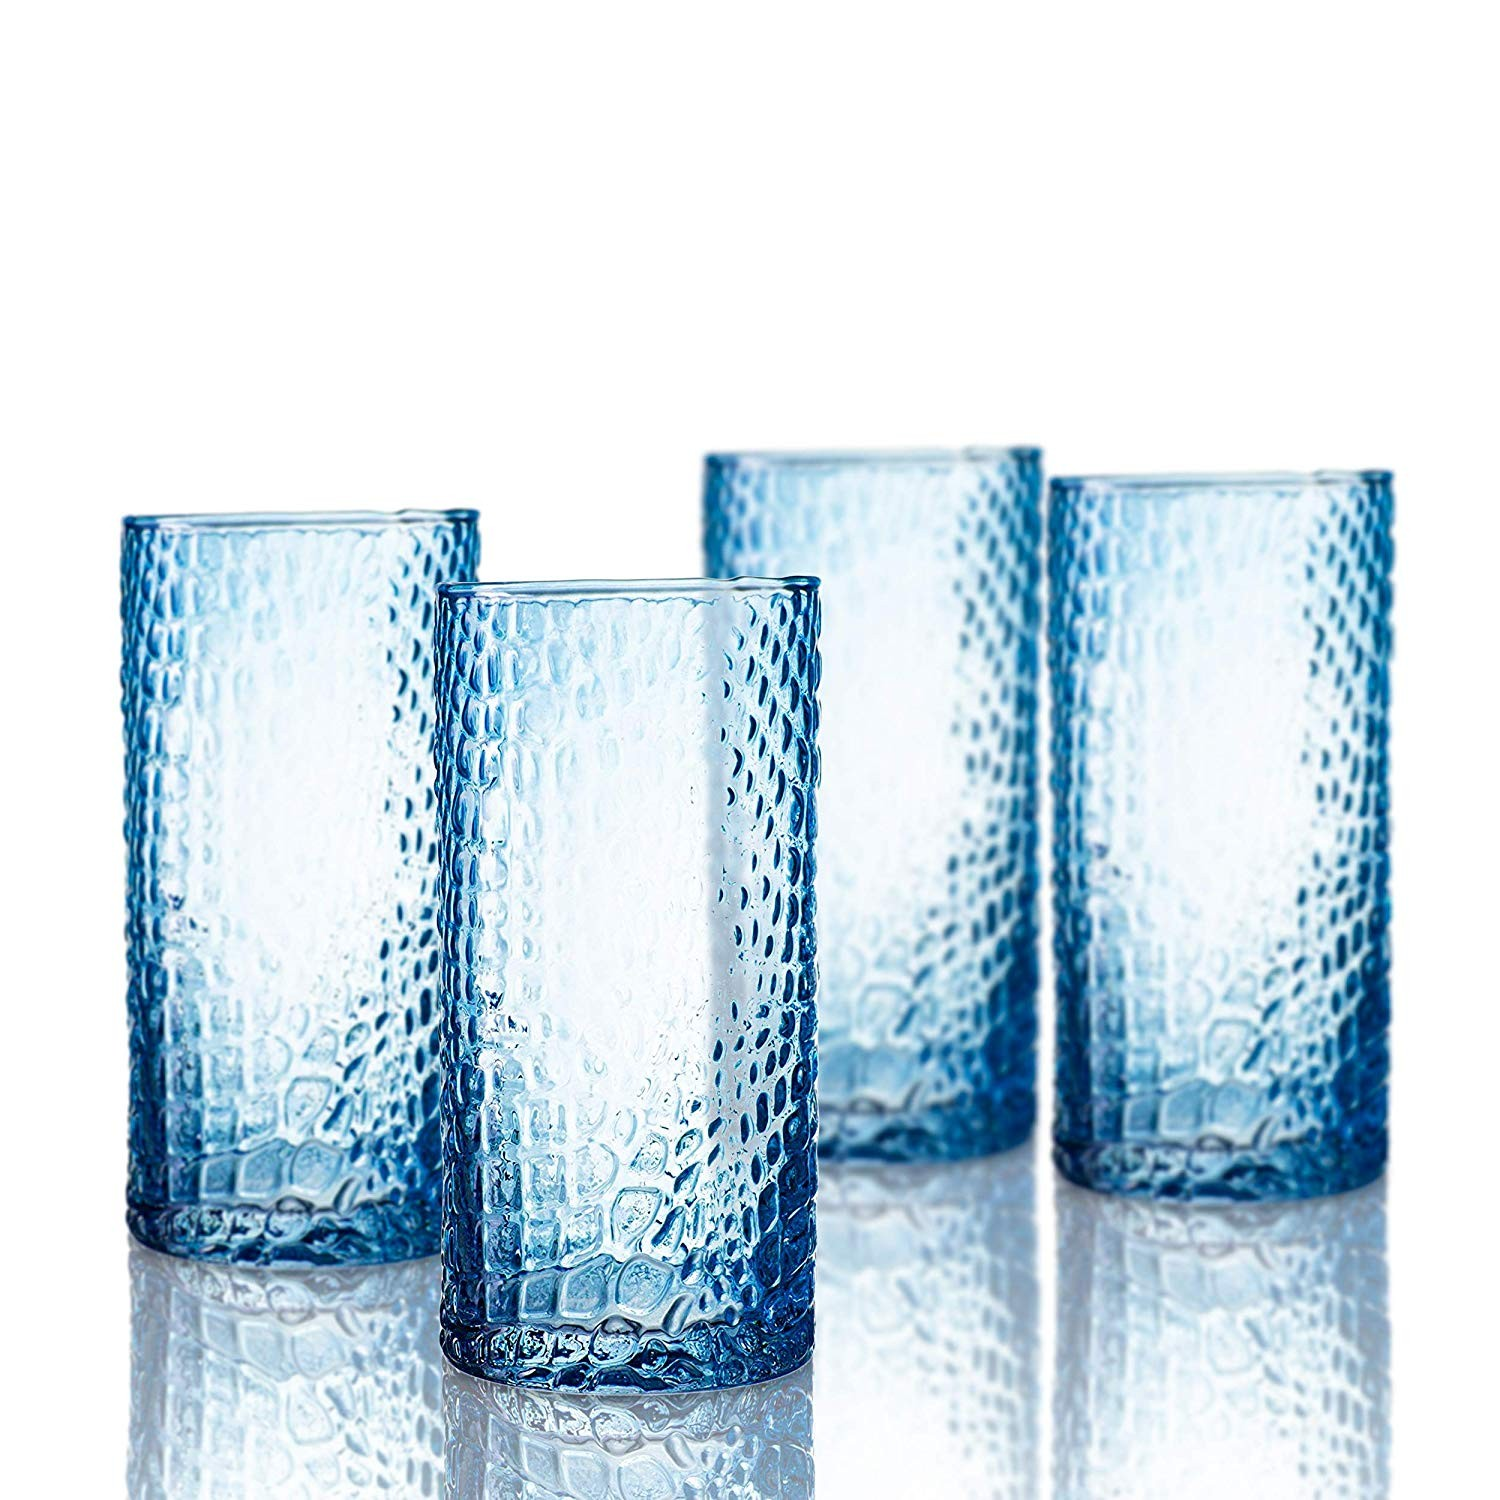 Elle Decor  229805-4HBBL Bistro Croc  4 Pc Set Highball Glasses, Blue-Glass Elegant Barware and Drinkware, Dishwasher Safe 15.5 Oz Blue